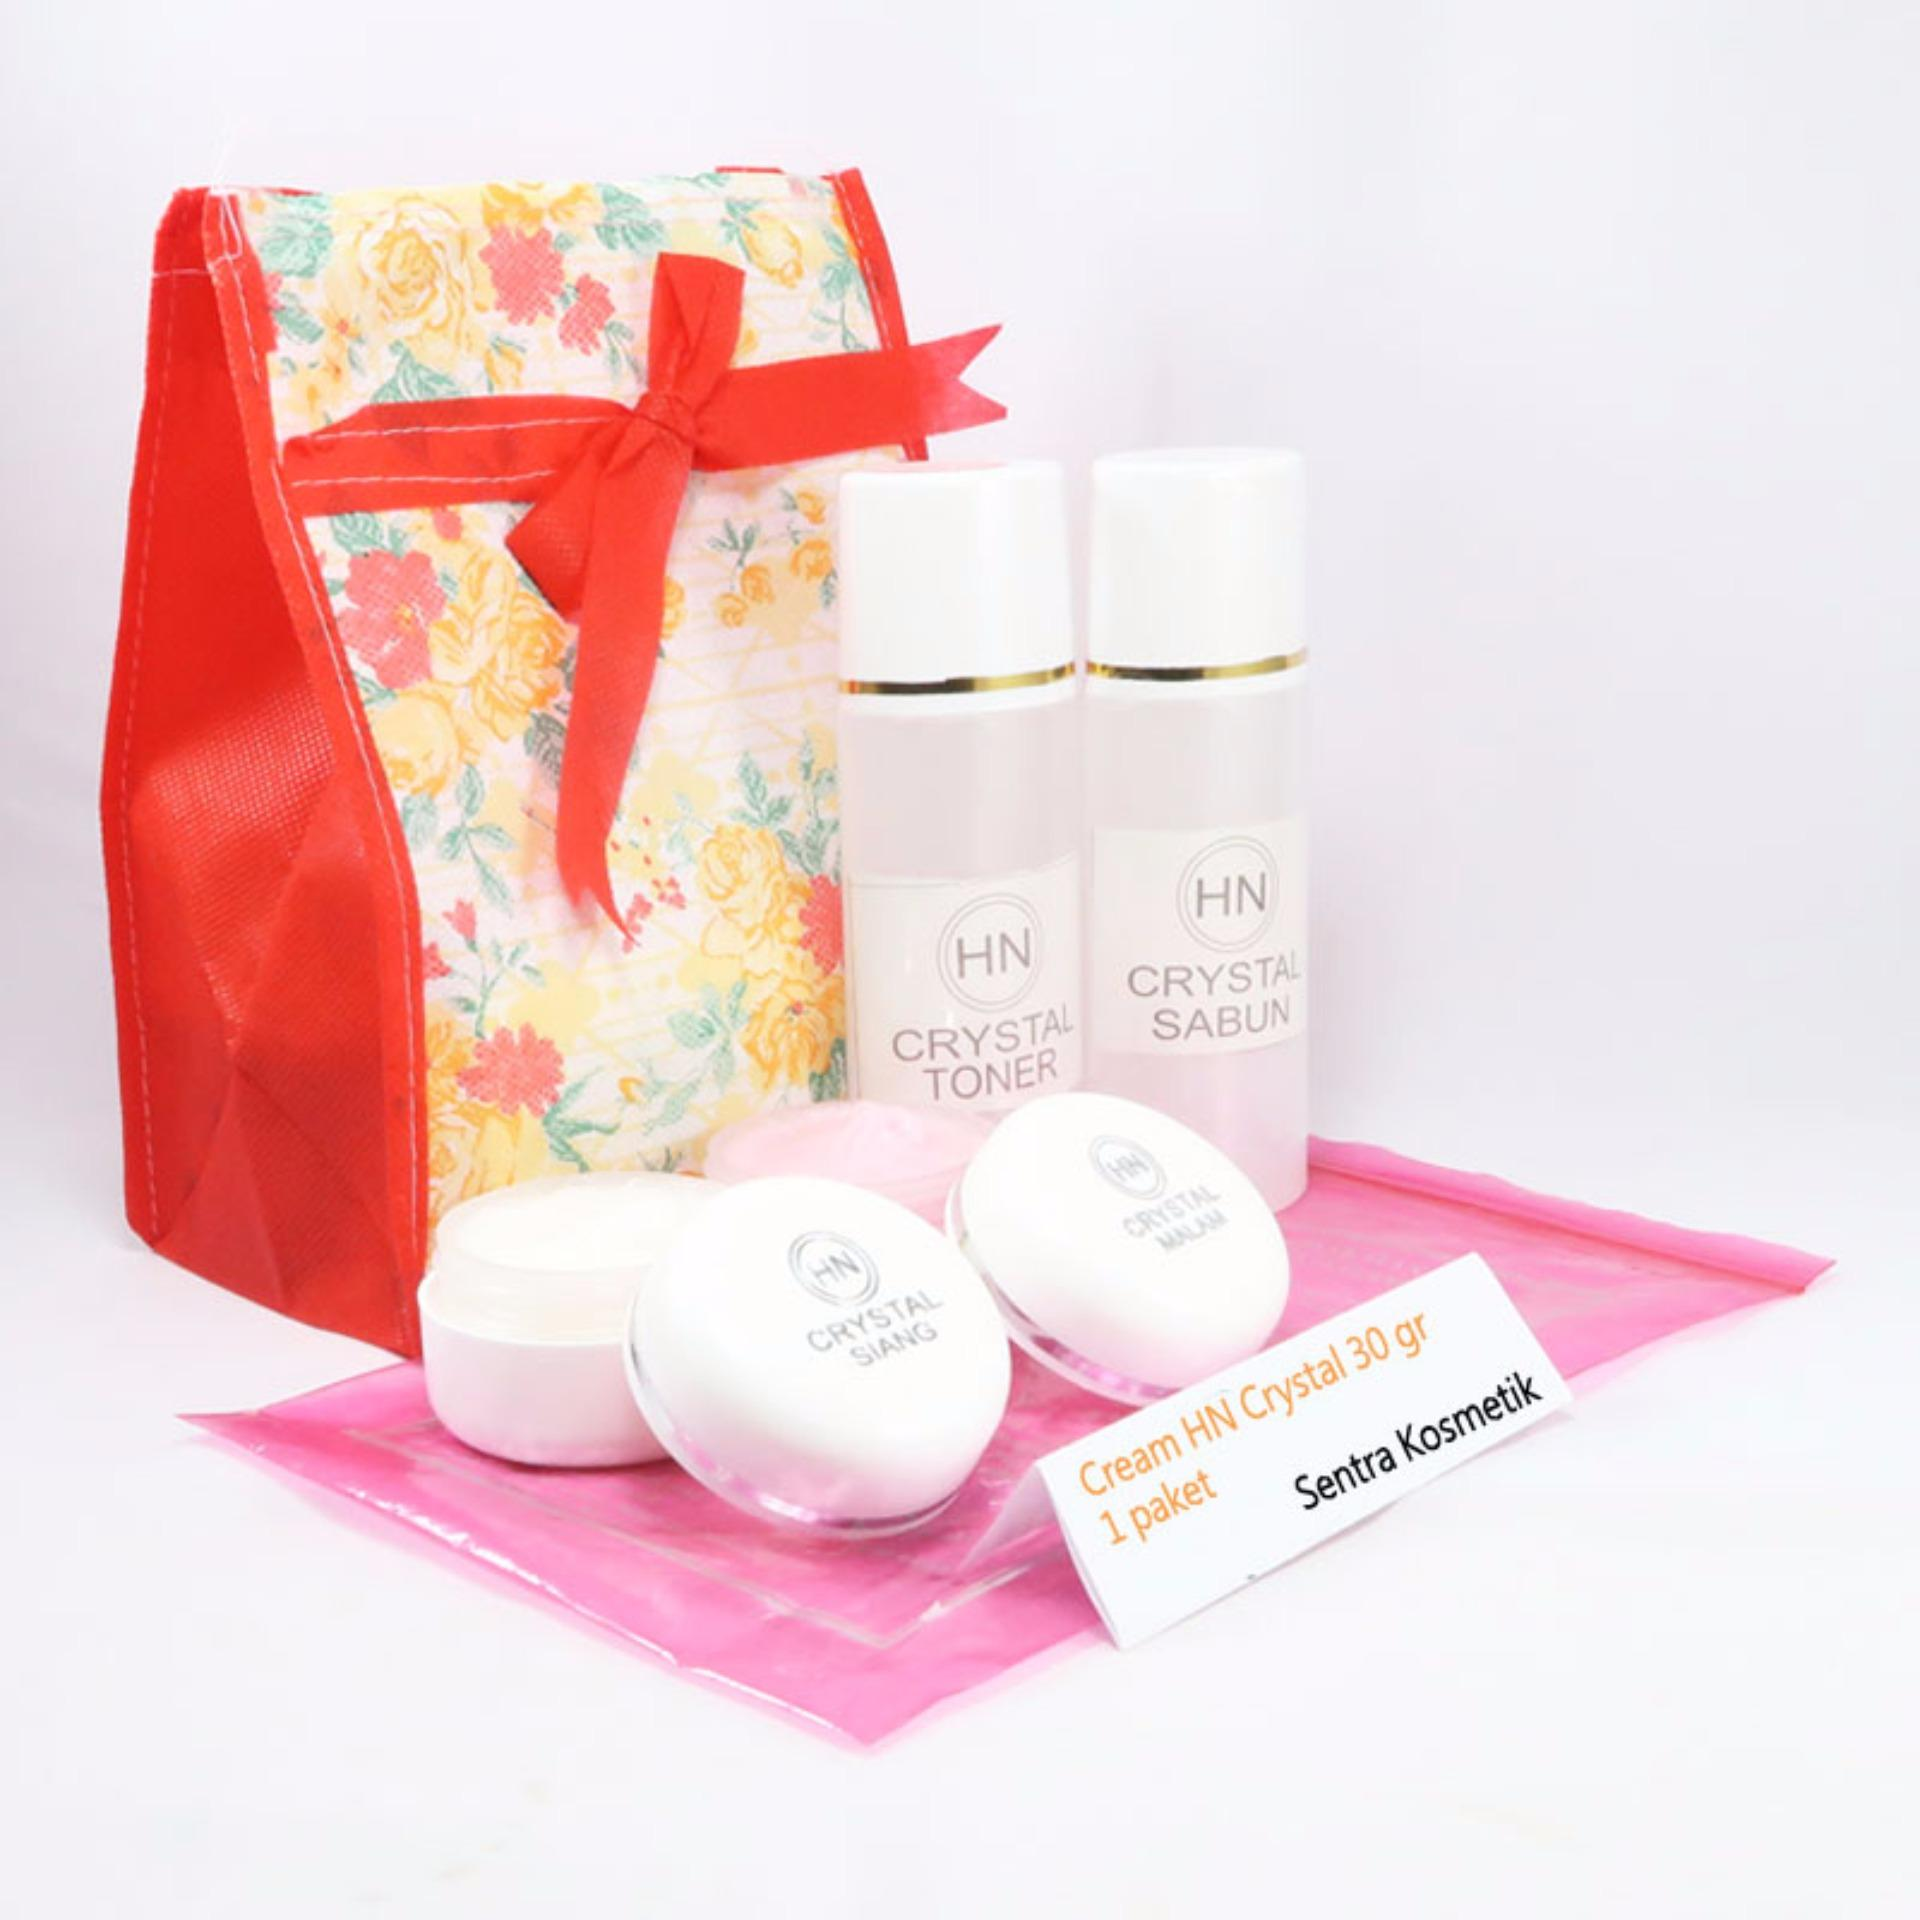 The Cheapest Price Cream Hn Crystal 30 Gr 1 Paket Rp50000 30gr Gratis 1paket